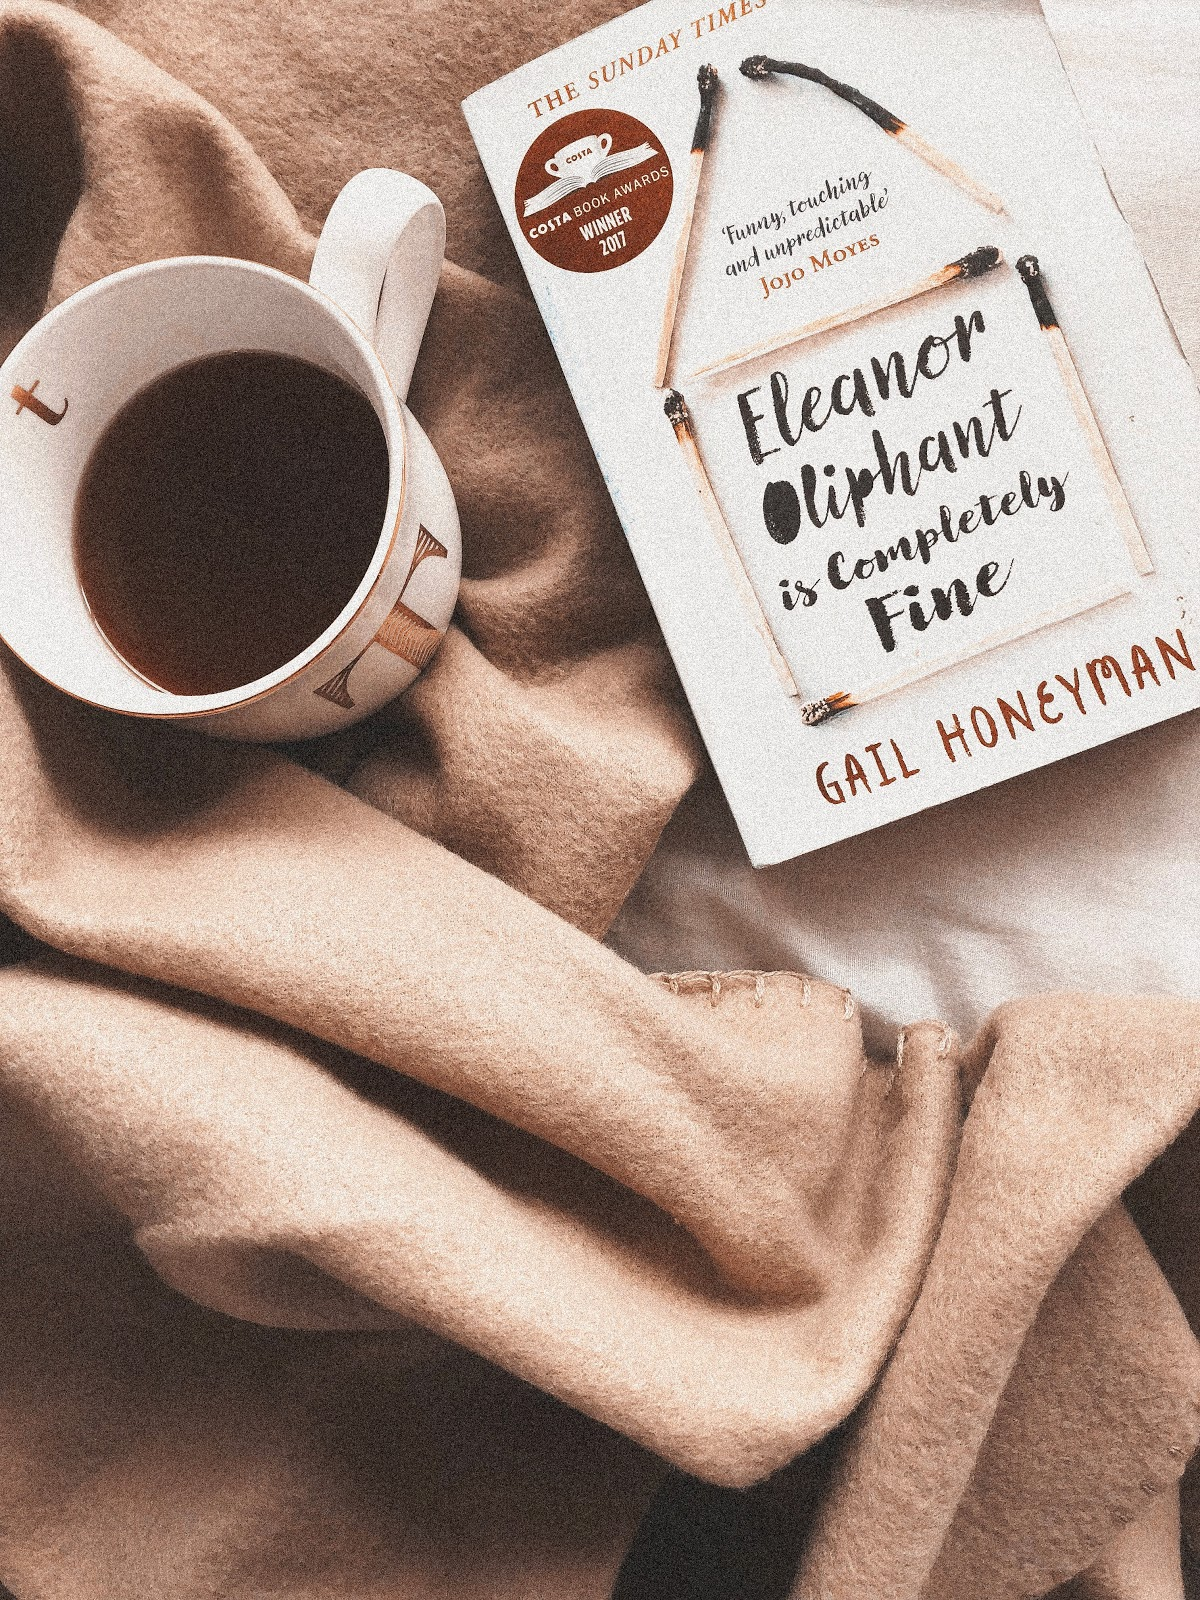 A flatlay containing a brown blanket, a mug of black coffee and a book